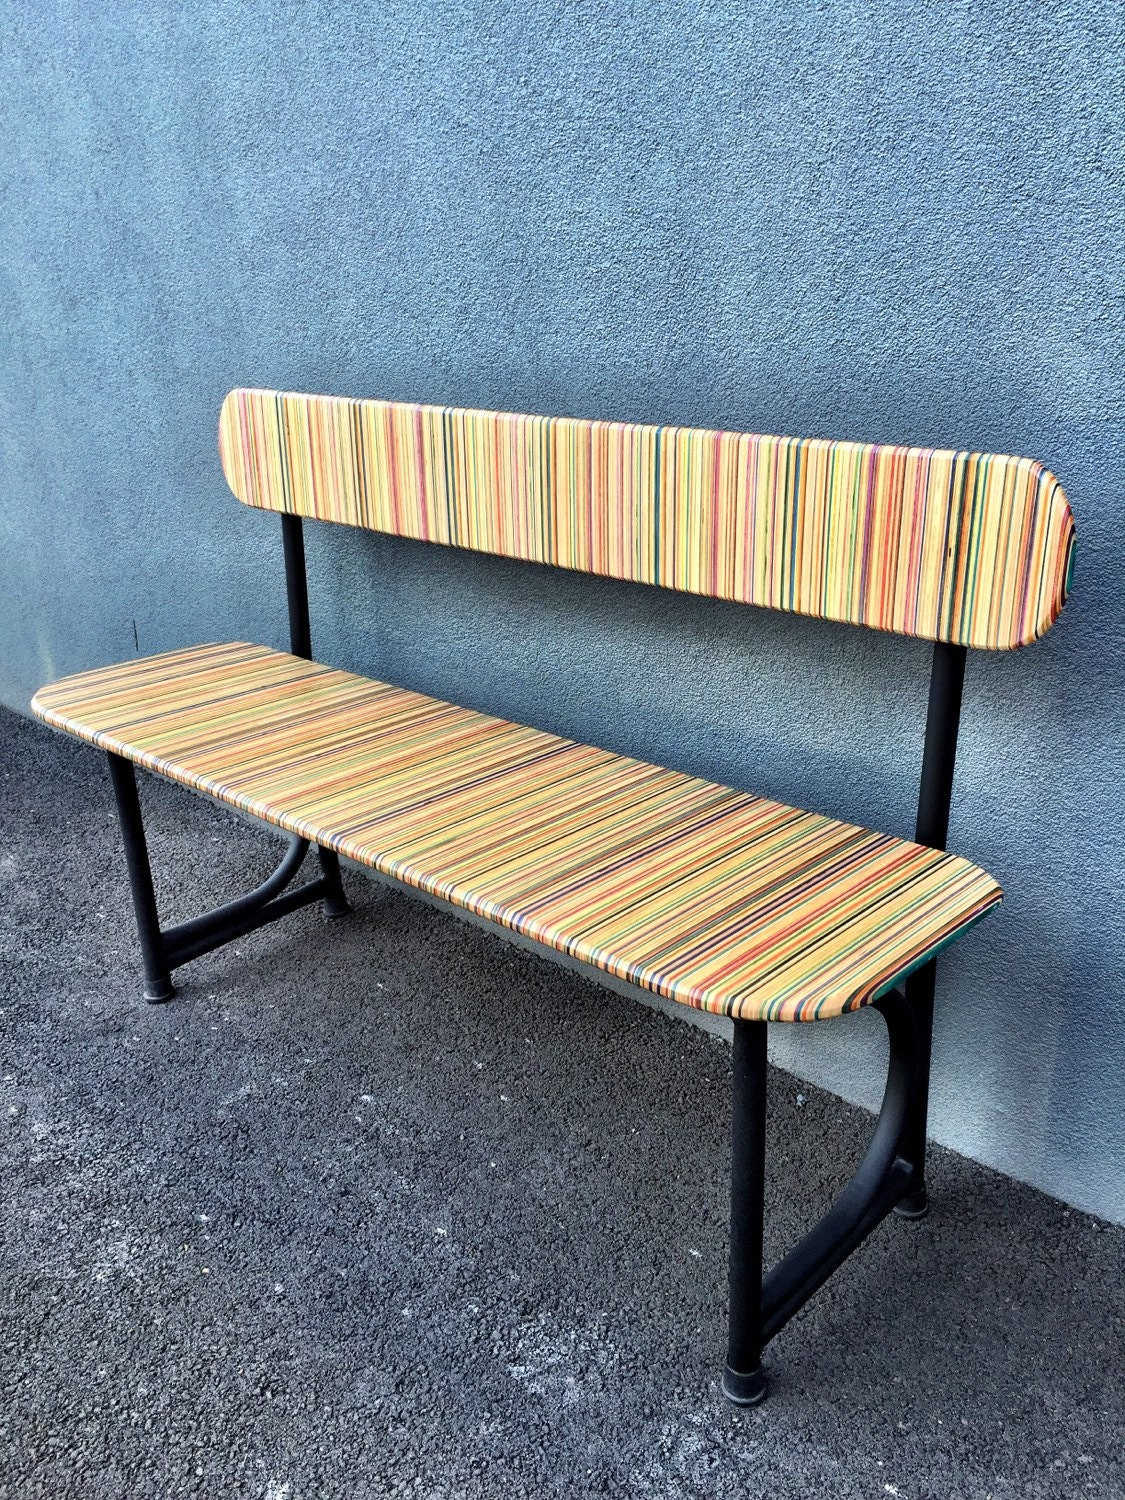 recycled skateboard school bench